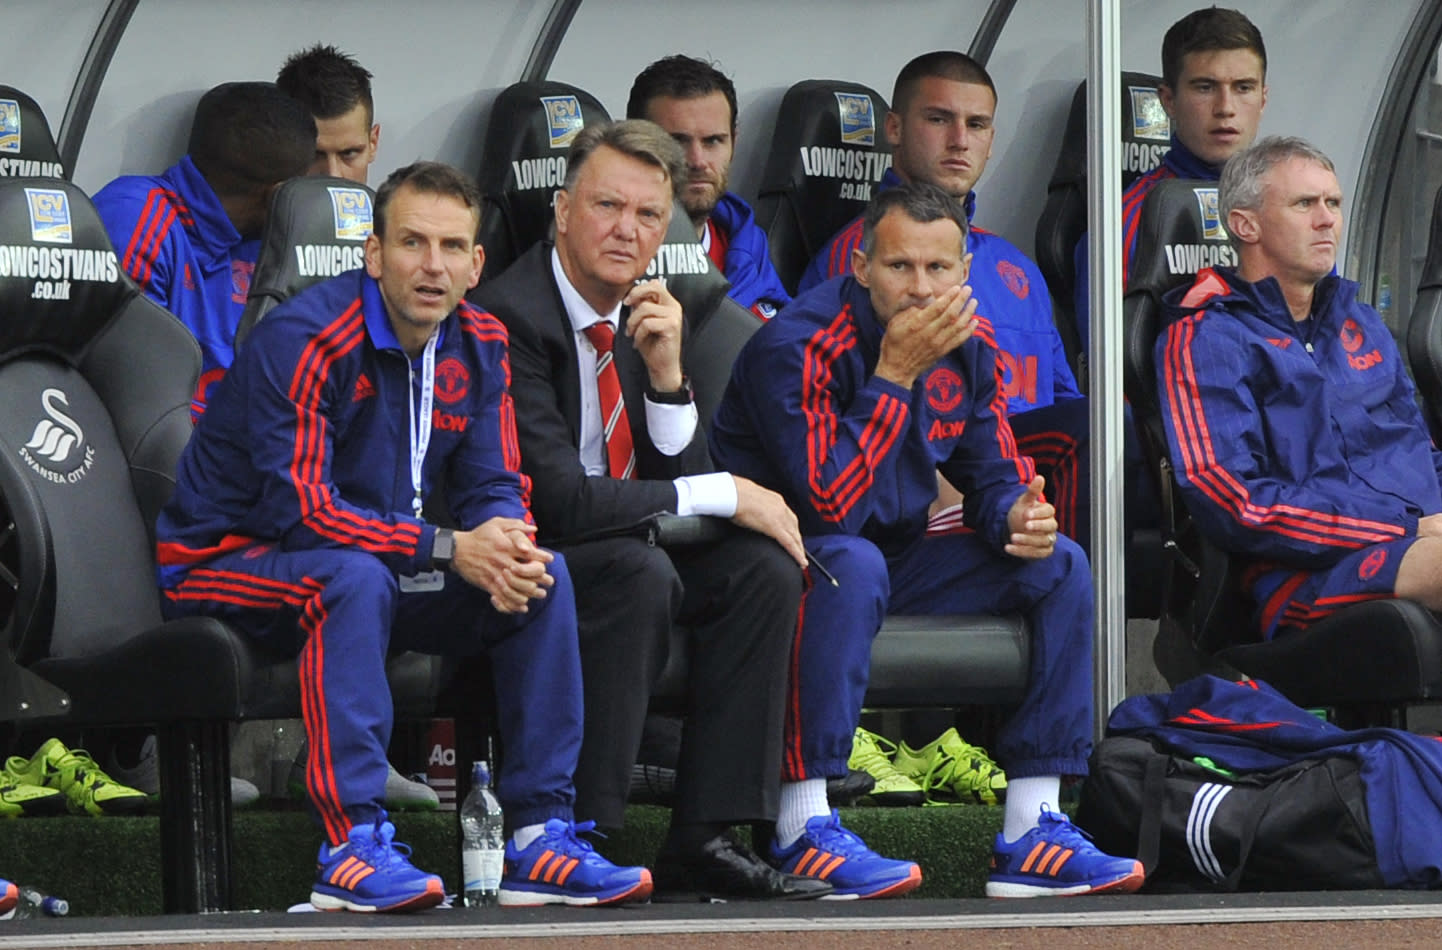 On Sir Alex Ferguson, Abraham Lincoln, Louis Van Gaal and the continuing struggles of Manchester United